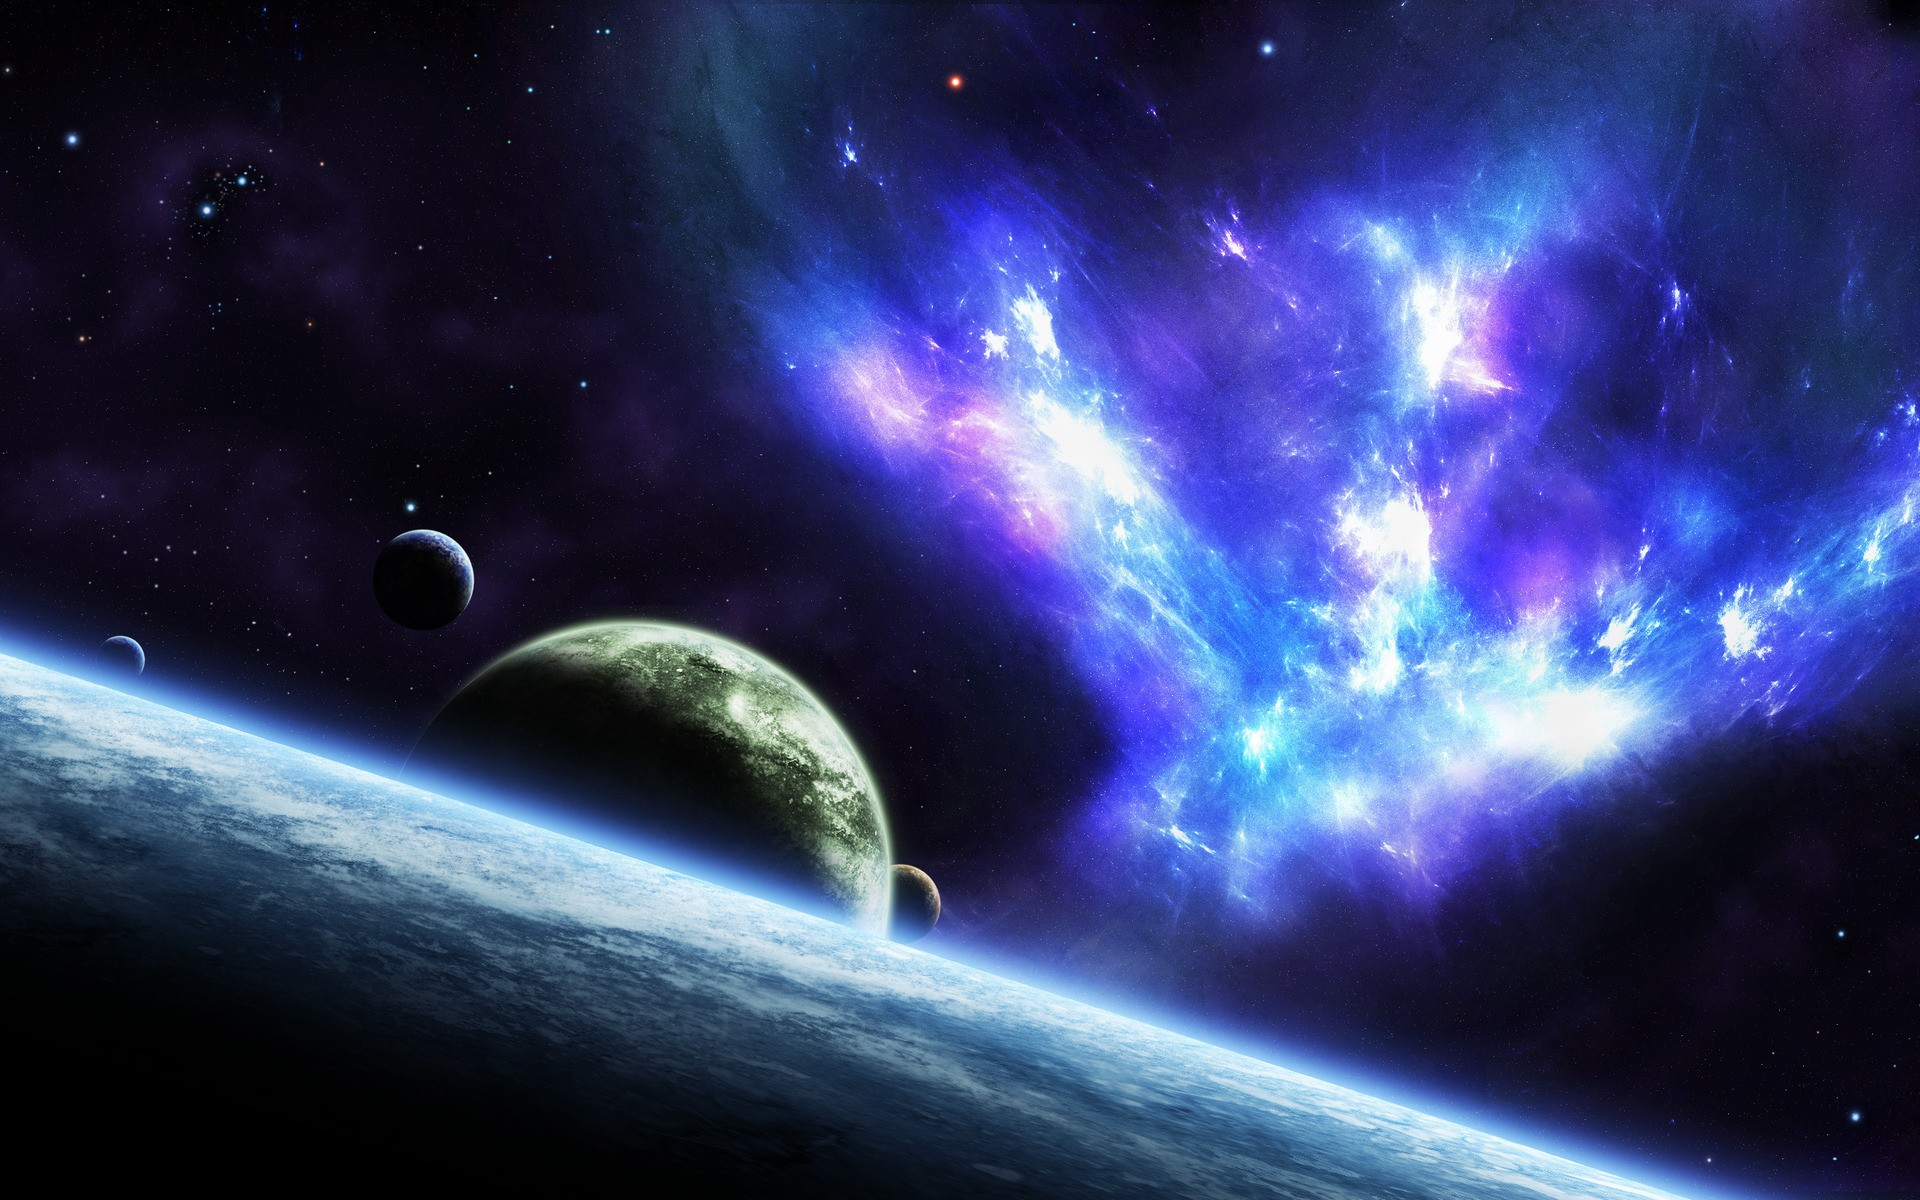 outer space planets skyscapes - photo #47